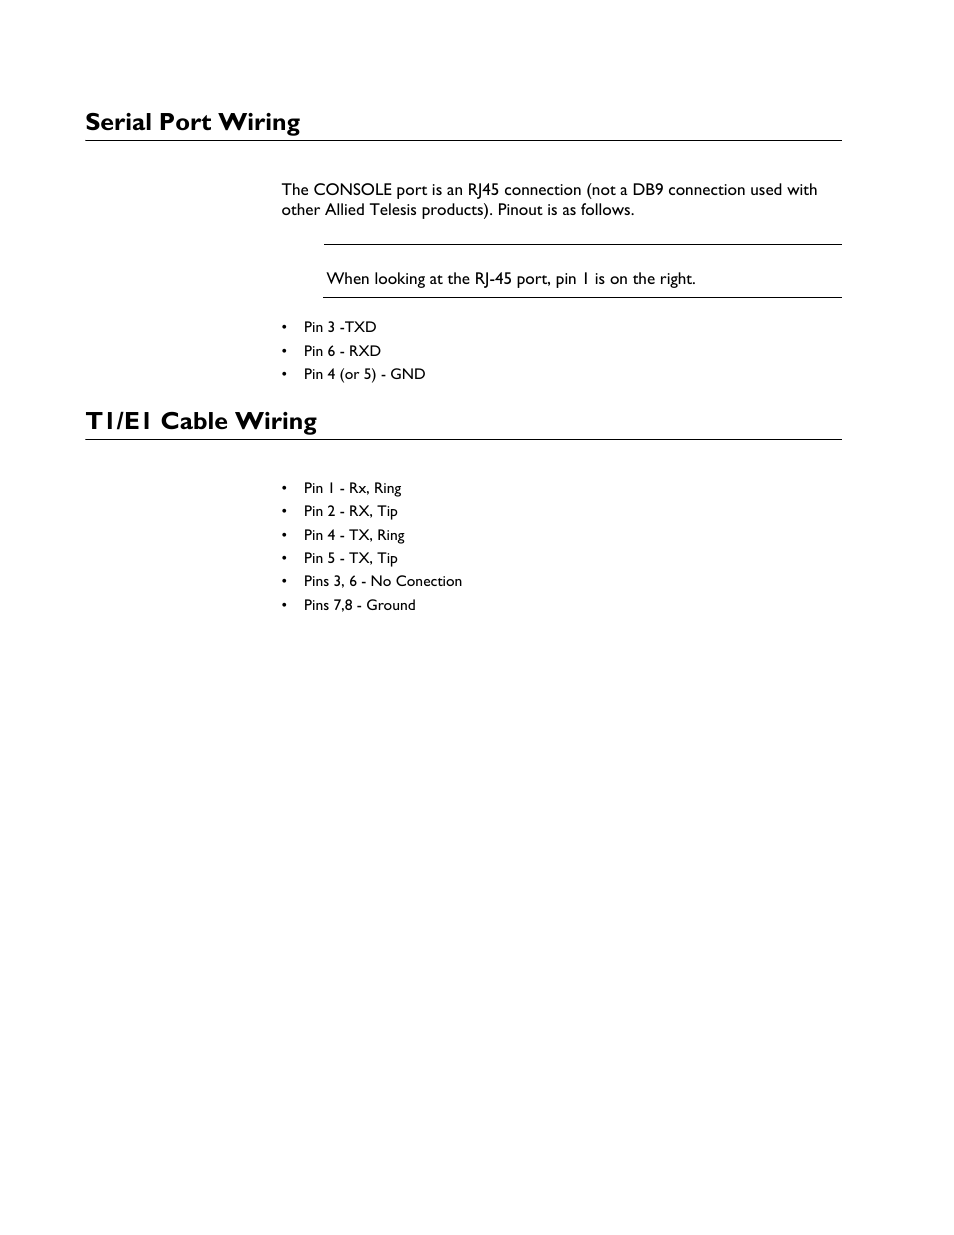 hight resolution of serial port wiring t1 e1 cable wiring allied telesis at img6x6mod electronics unit user manual page 38 46